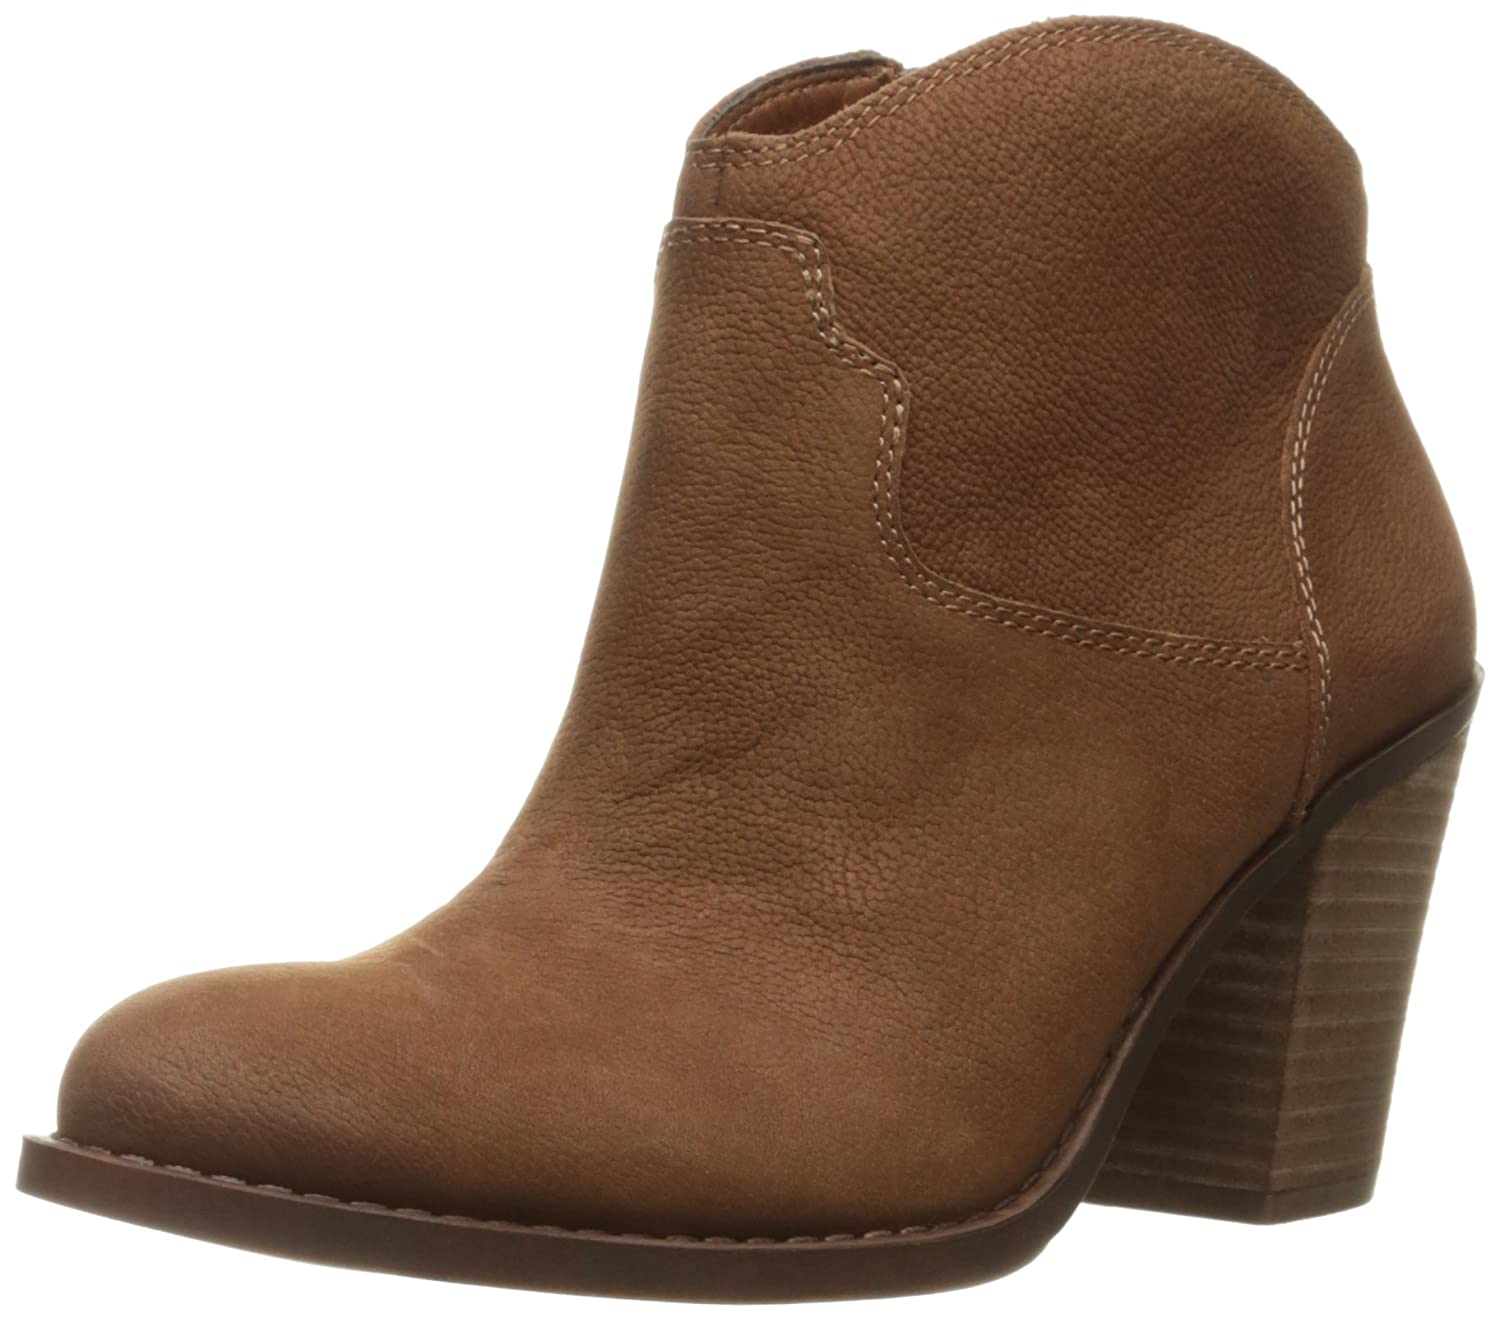 Lucky Brand Women's Eller Boot B01IQ65FEU 6.5 B(M) US|Toffee